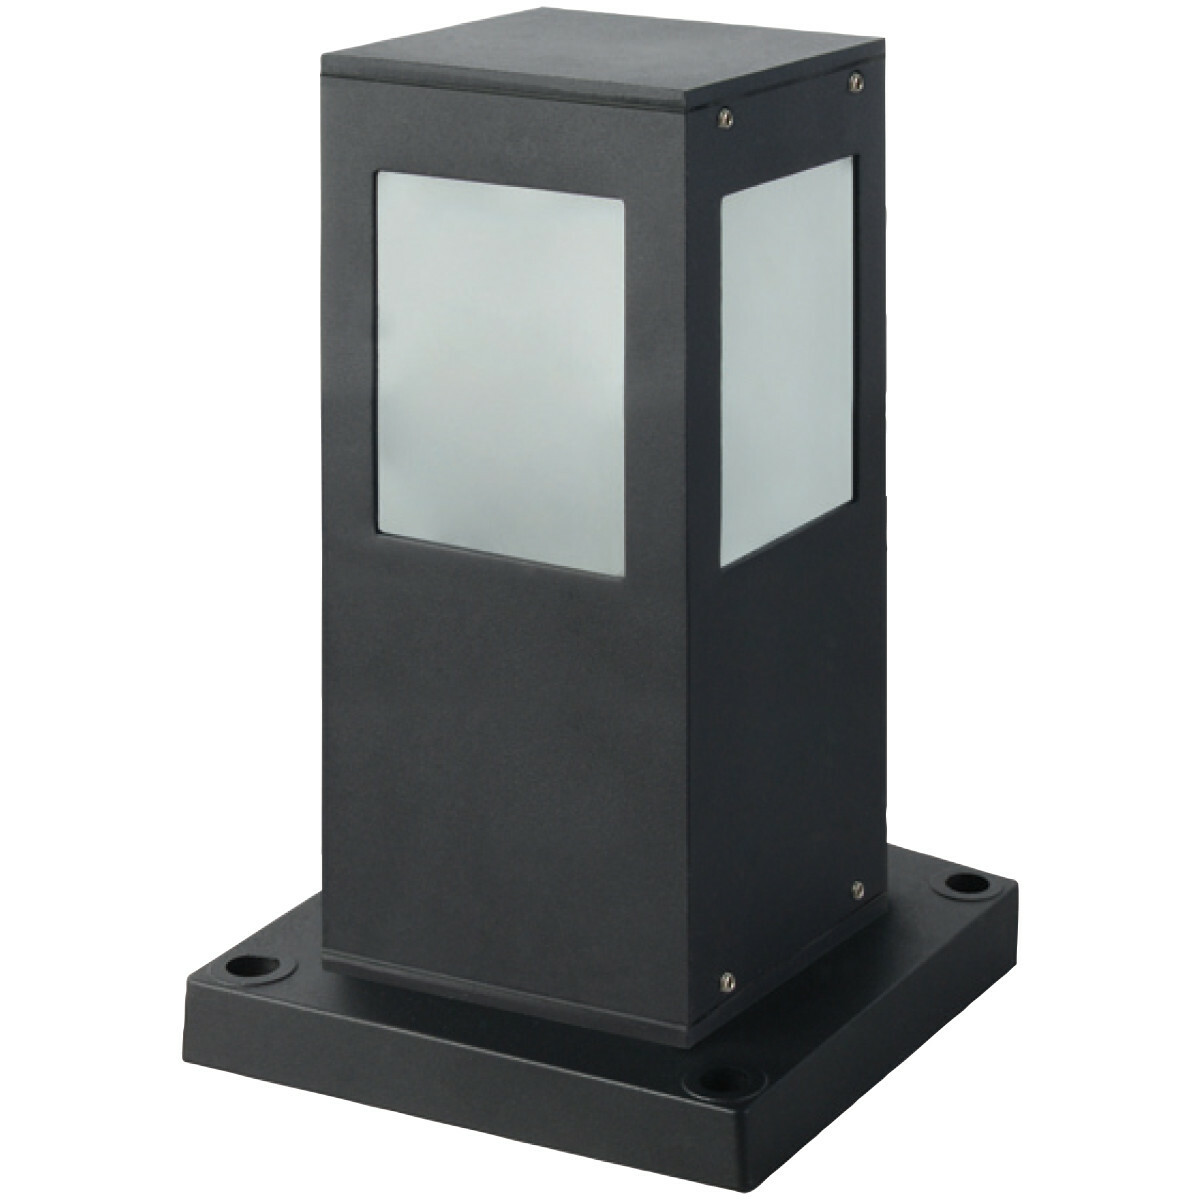 PHILIPS - LED Tuinverlichting - Staande Buitenlamp - SceneSwitch 827 A60 - Kavy 3 - E27 Fitting - Di